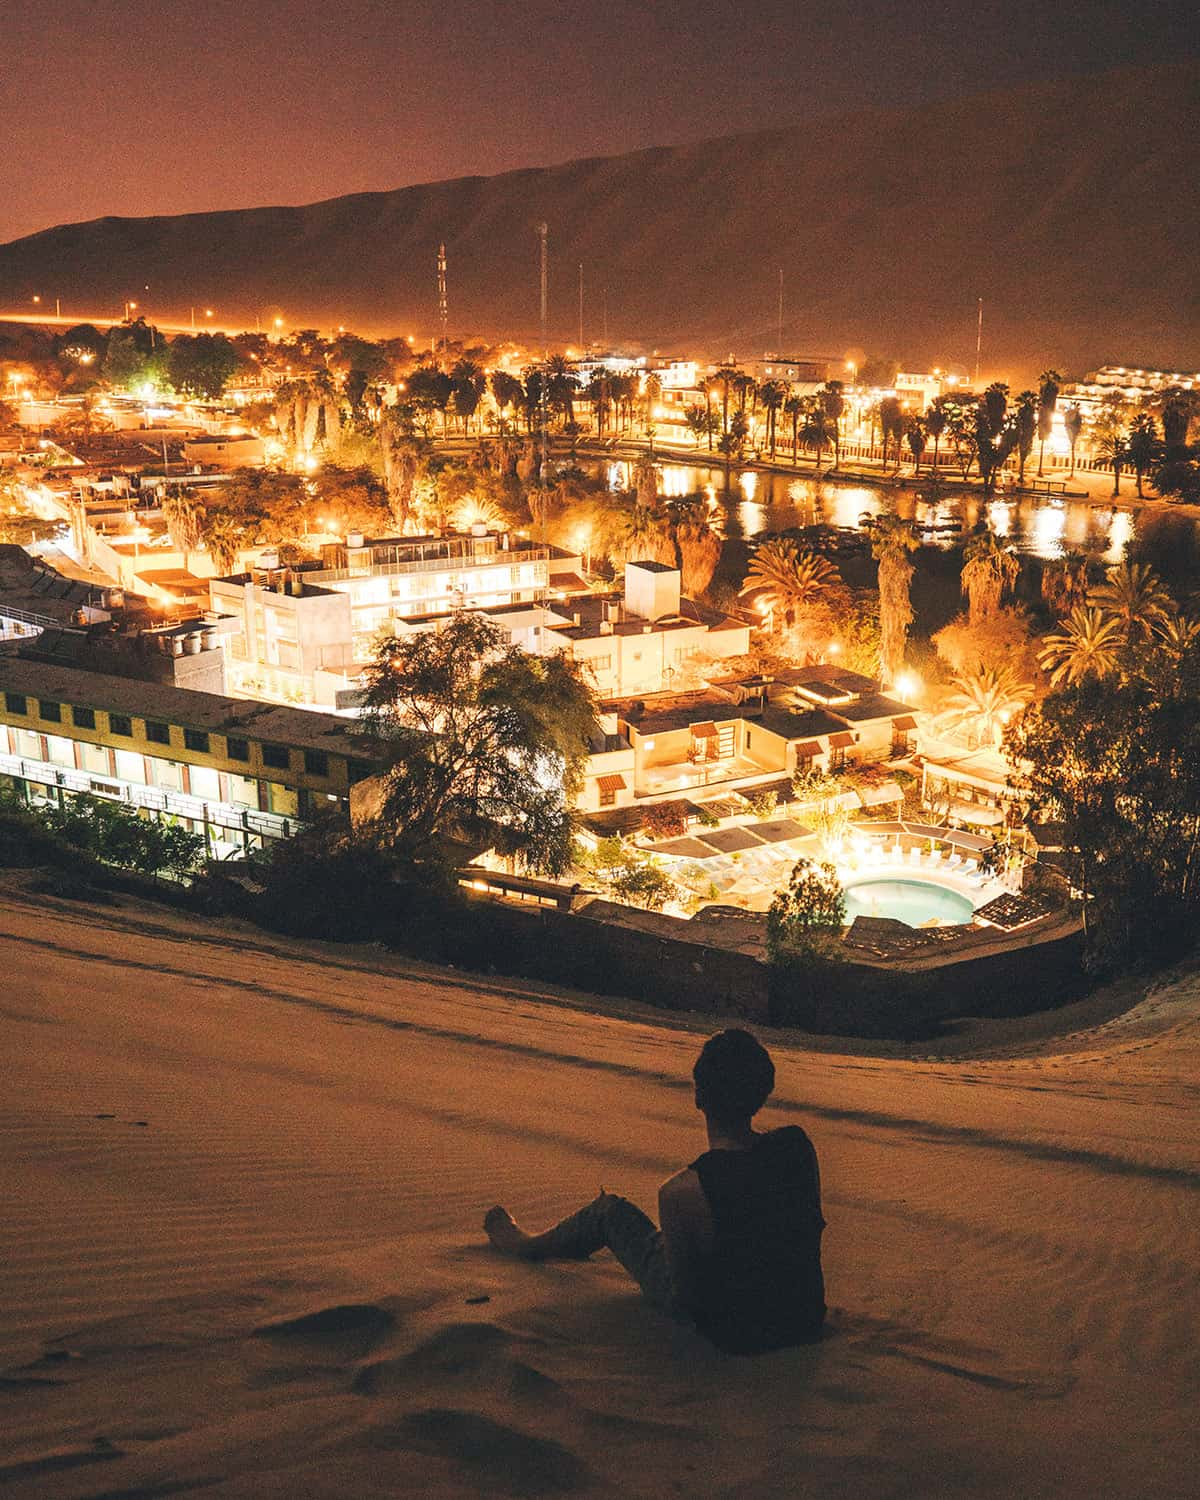 Bright lights of the Huacachina desert oasis at night